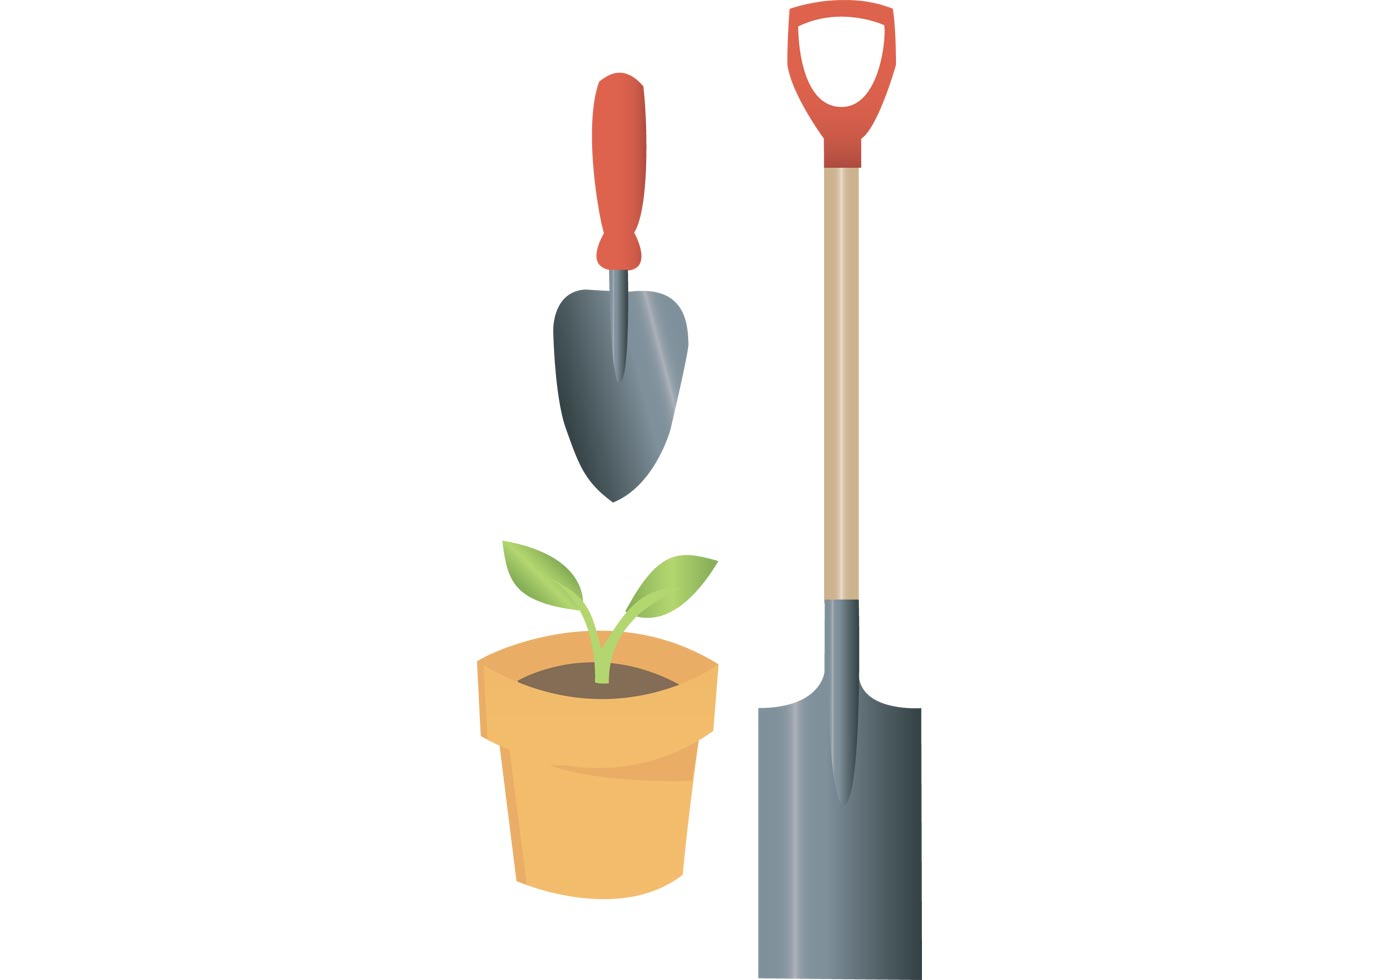 Free garden equipment vectors from vecteezy for Gardening tools toronto